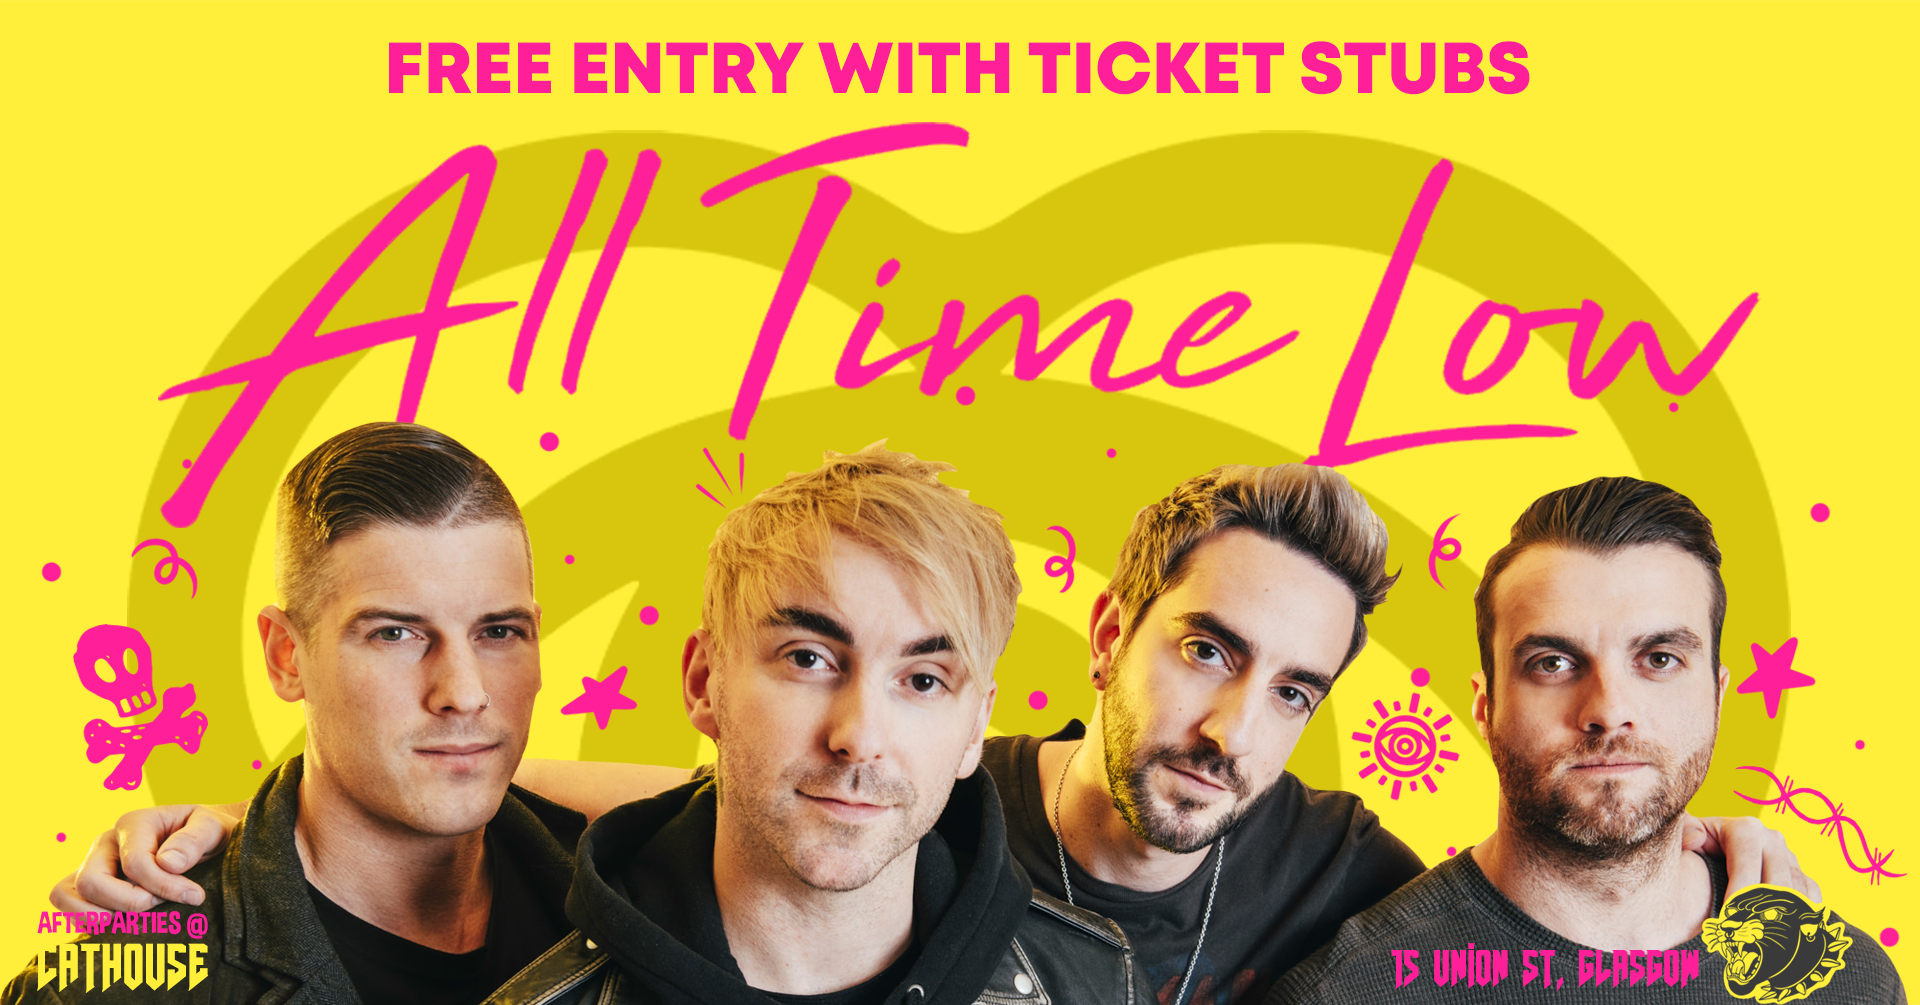 Graphic with text: Afterparties @ Cathouse   All Time Low   Free entry with ticket stubs   15 Union St, Glasgow